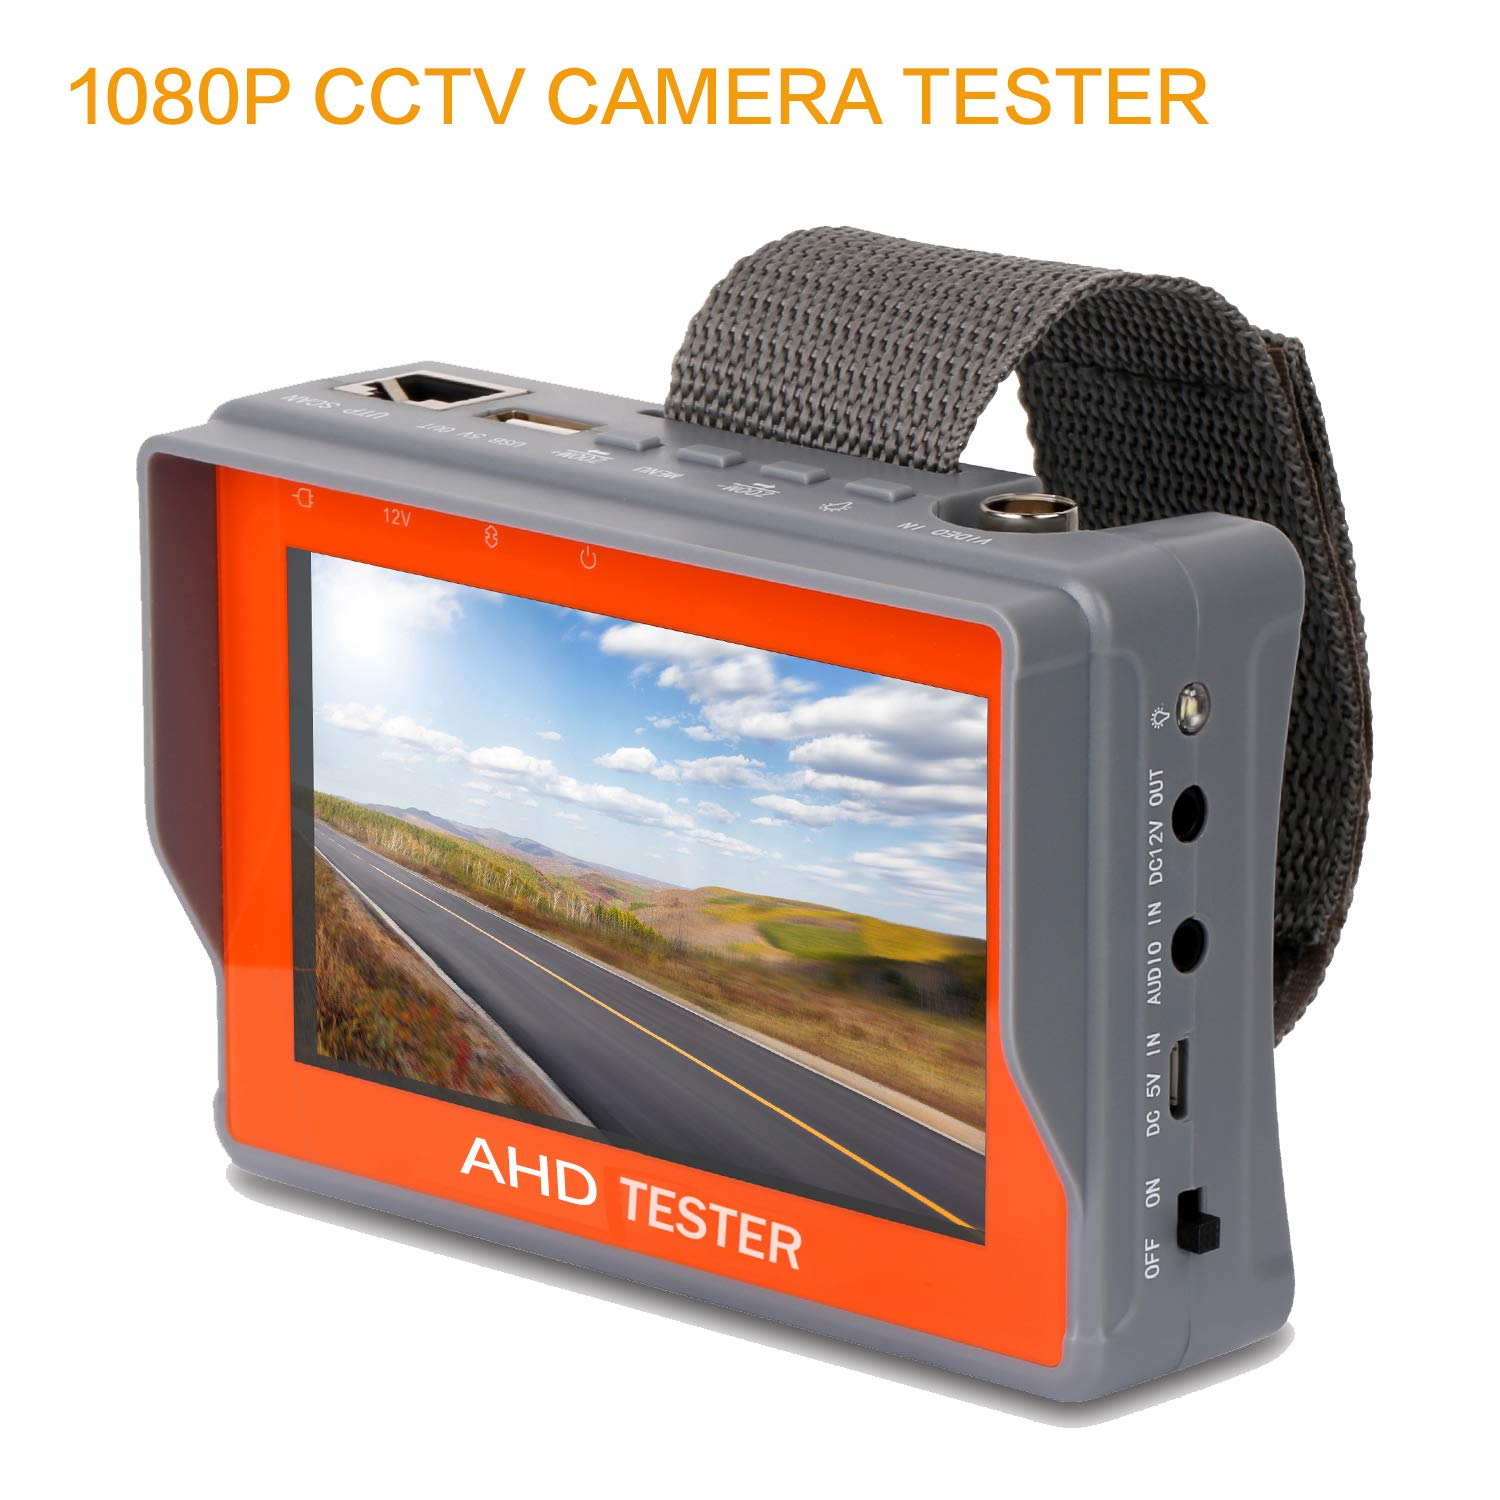 SGEF CCTV Tester 2-in-1 Portable Camera Tester AHD Analog Tester 4.3-inch LCD Monitor Wrist Video Test Cable Test PTZ Control 12V Power Output Audio Tester (IV7A) by SGEF